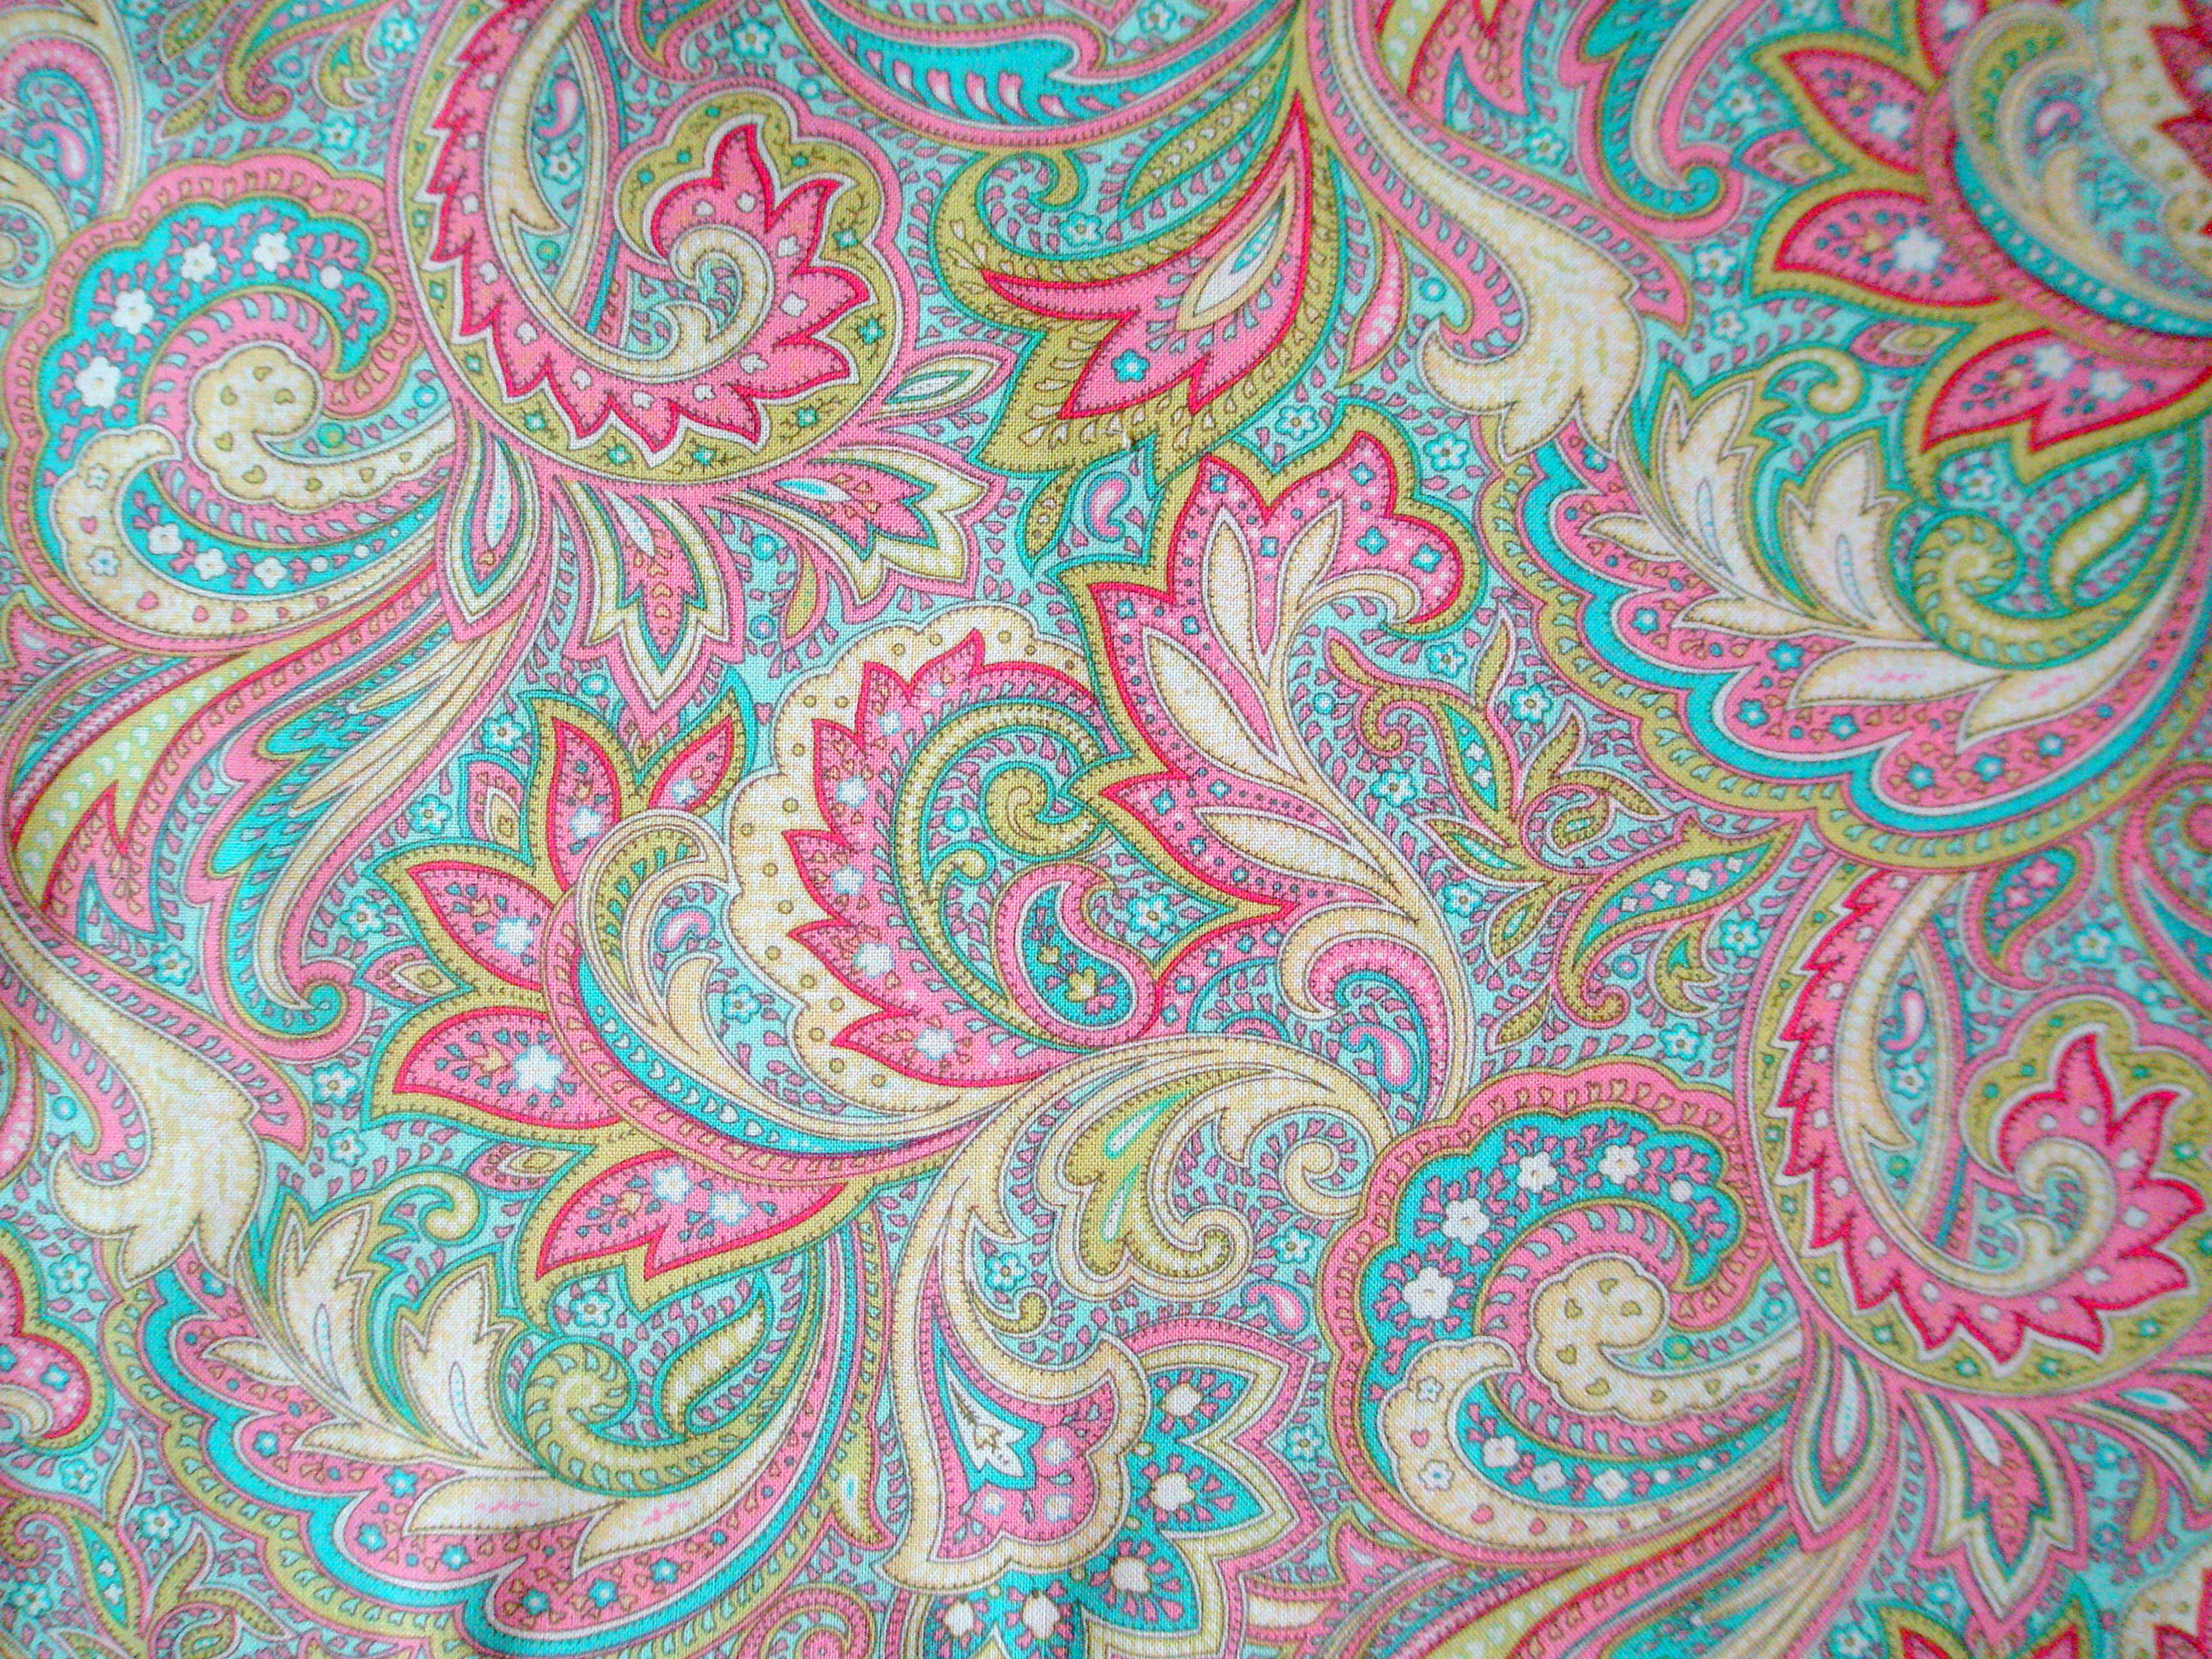 Paisley widescreen wallpaper background 61422 3264x2448 px for Paisley wallpaper